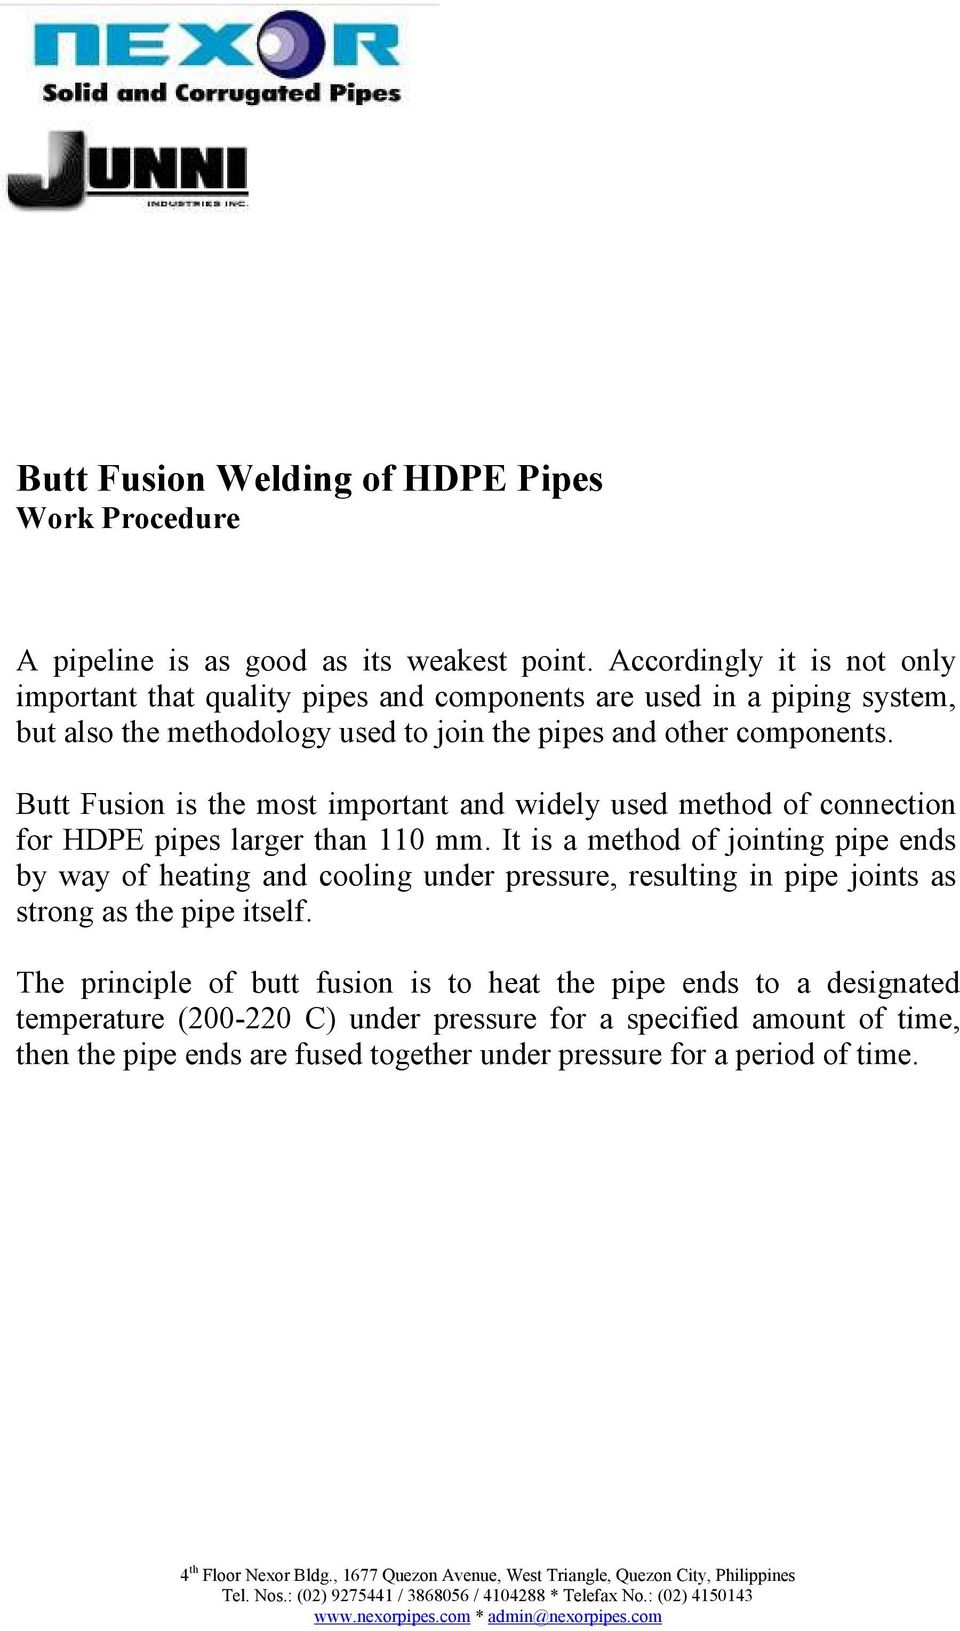 Butt Fusion is the most important and widely used method of connection for HDPE pipes larger than 110 mm.